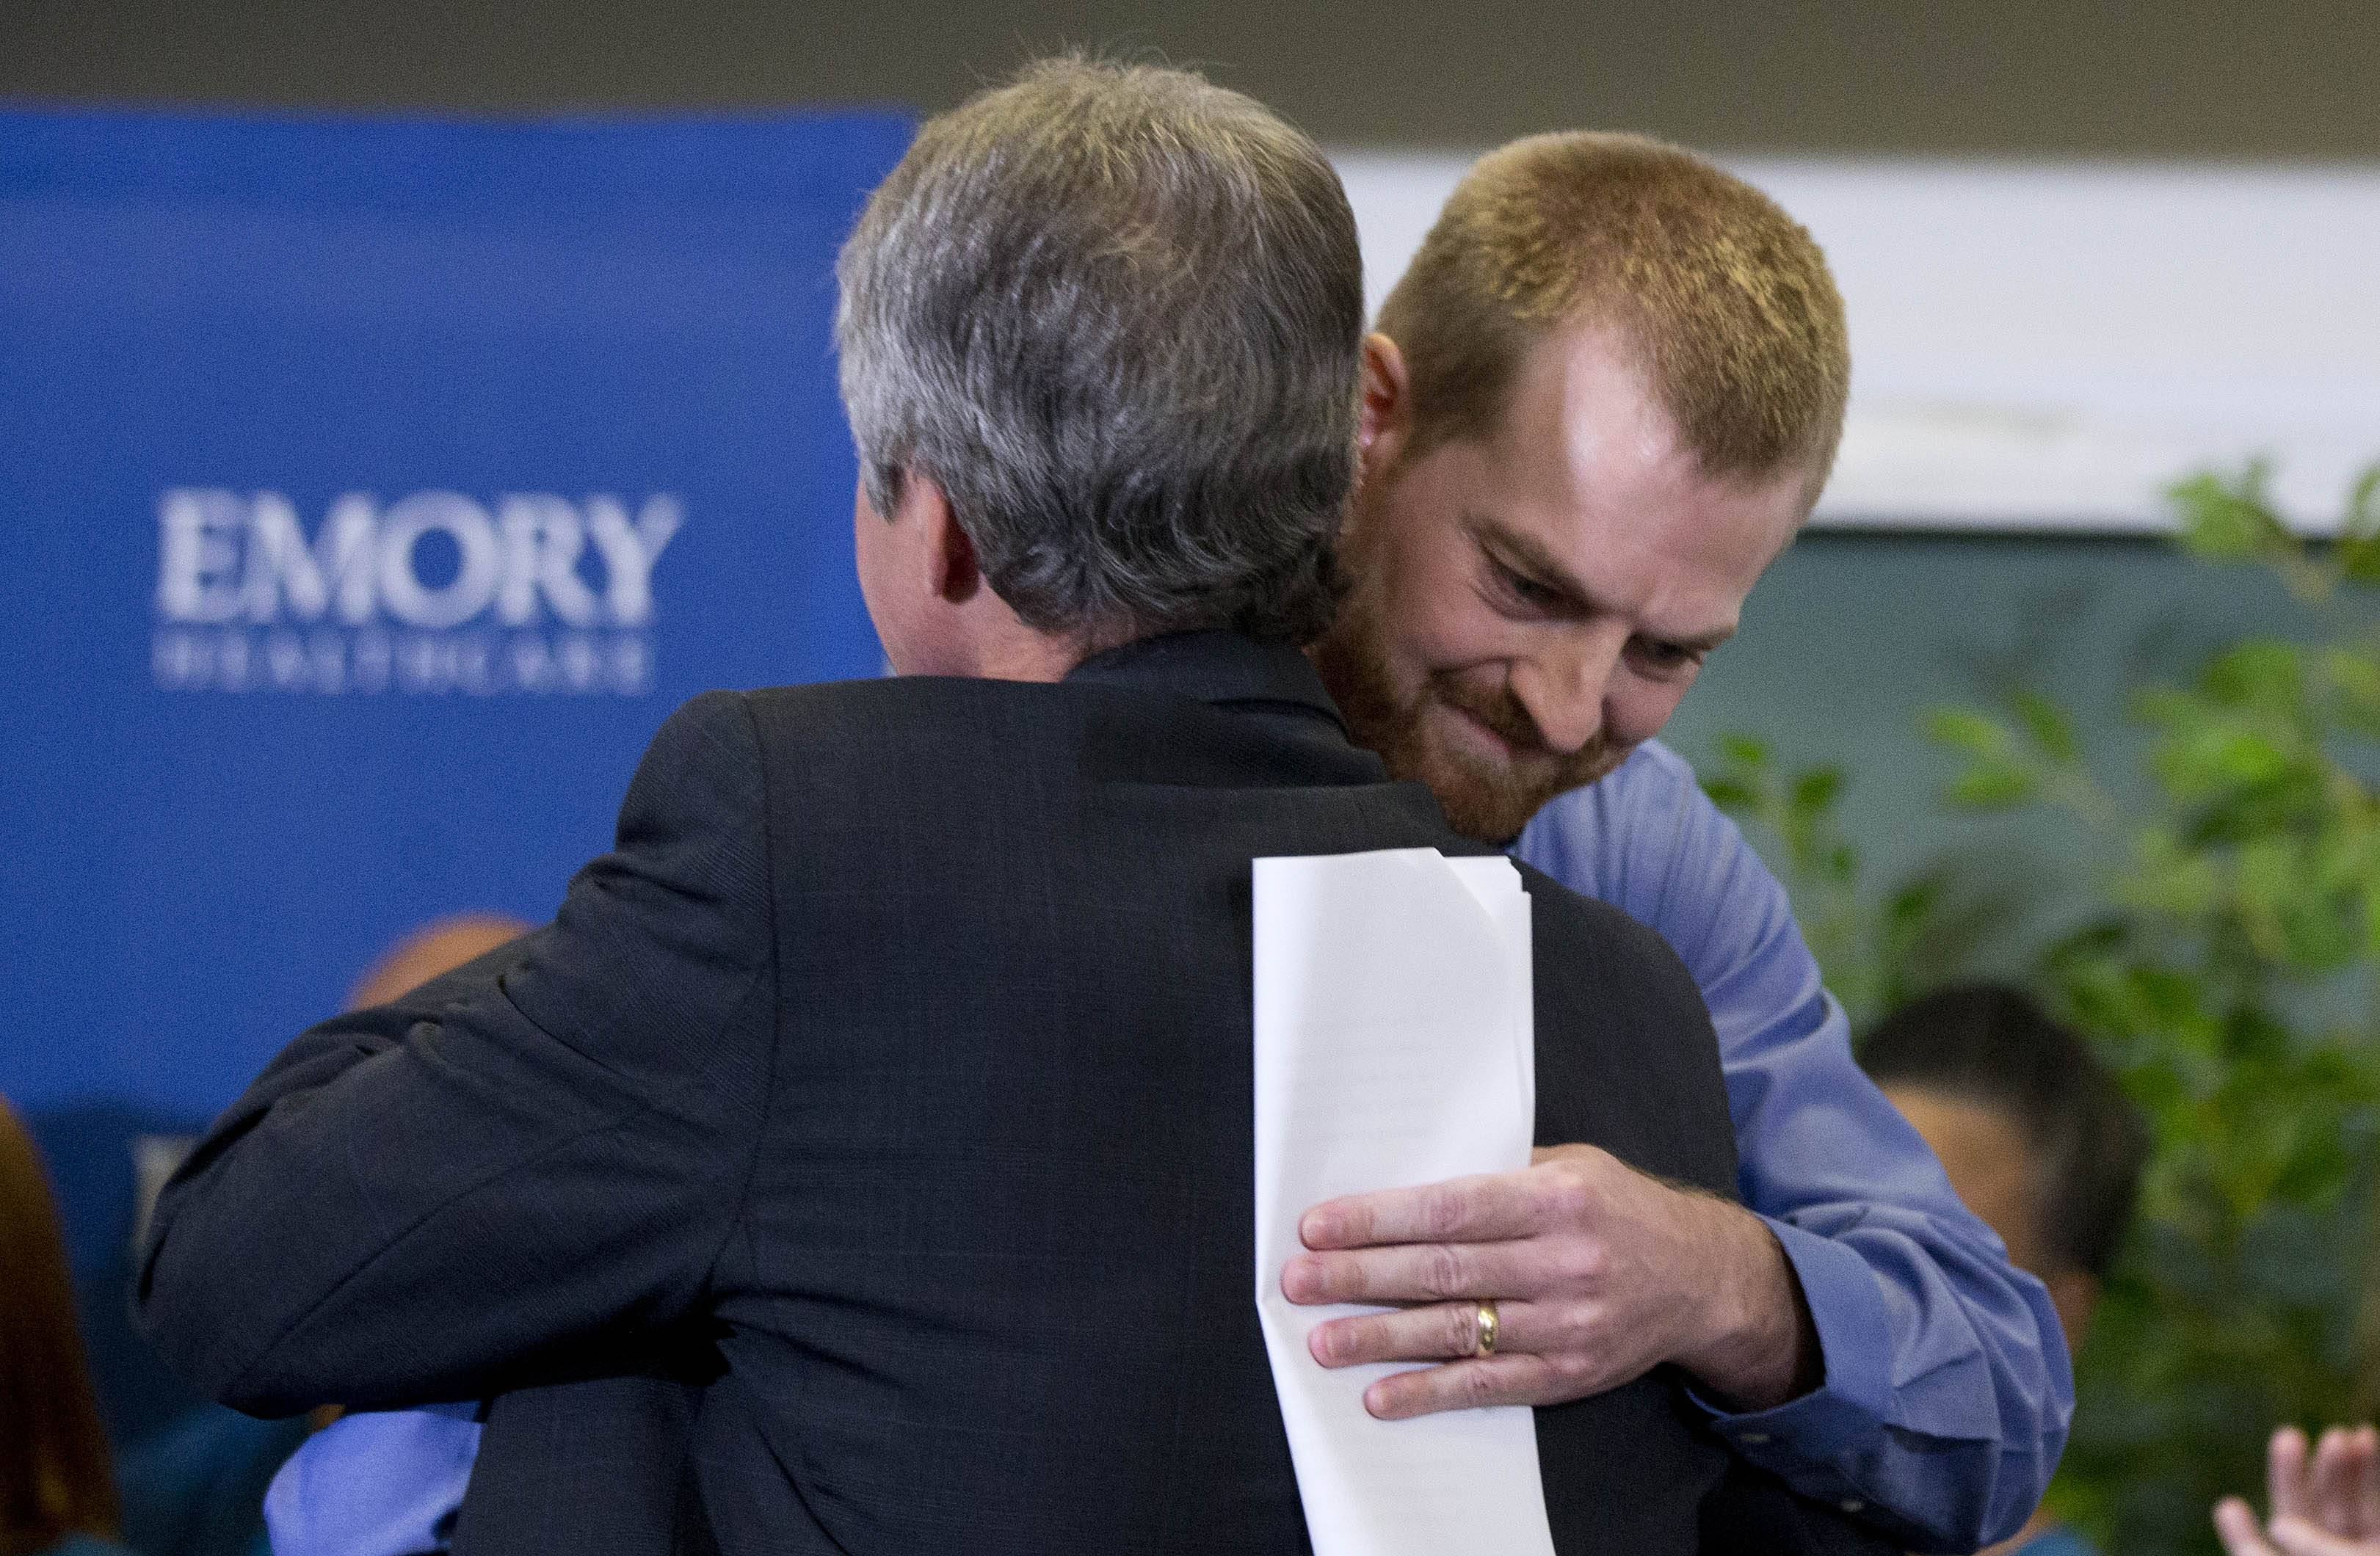 Ebola victim Dr. Kent Brantly, right, hugs a member of the medical staff that treated him, after being released Thursday from Emory University Hospital in Atlanta. Another American aid worker, Nancy Writebol, who was also infected with the Ebola virus, was released from the hospital Tuesday.